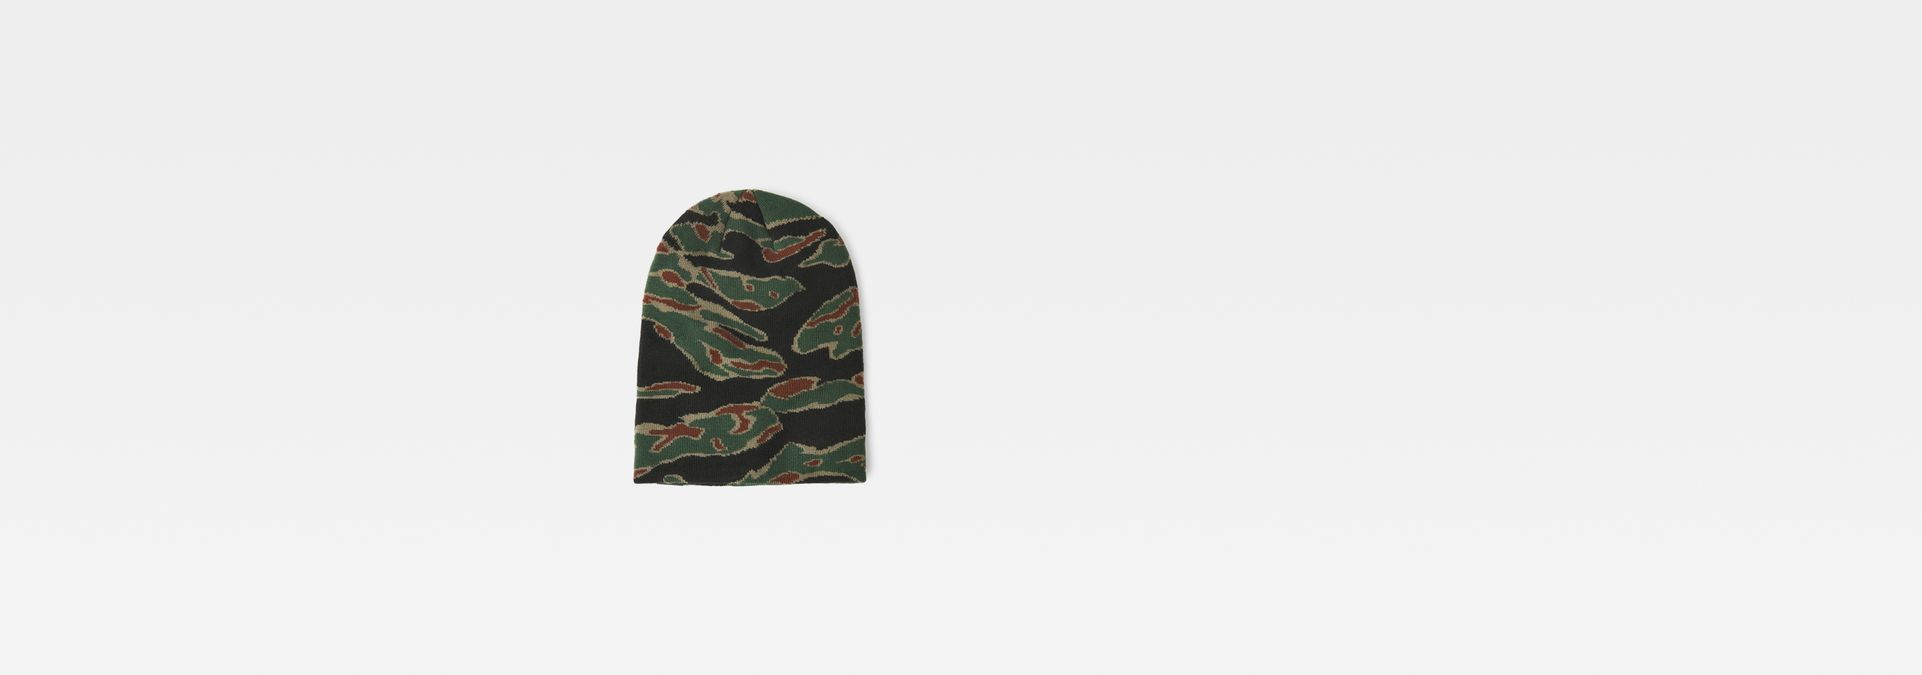 Effo long beanie   smoke green dk vermont green ao   G-Star RAW® cd673219a2c1